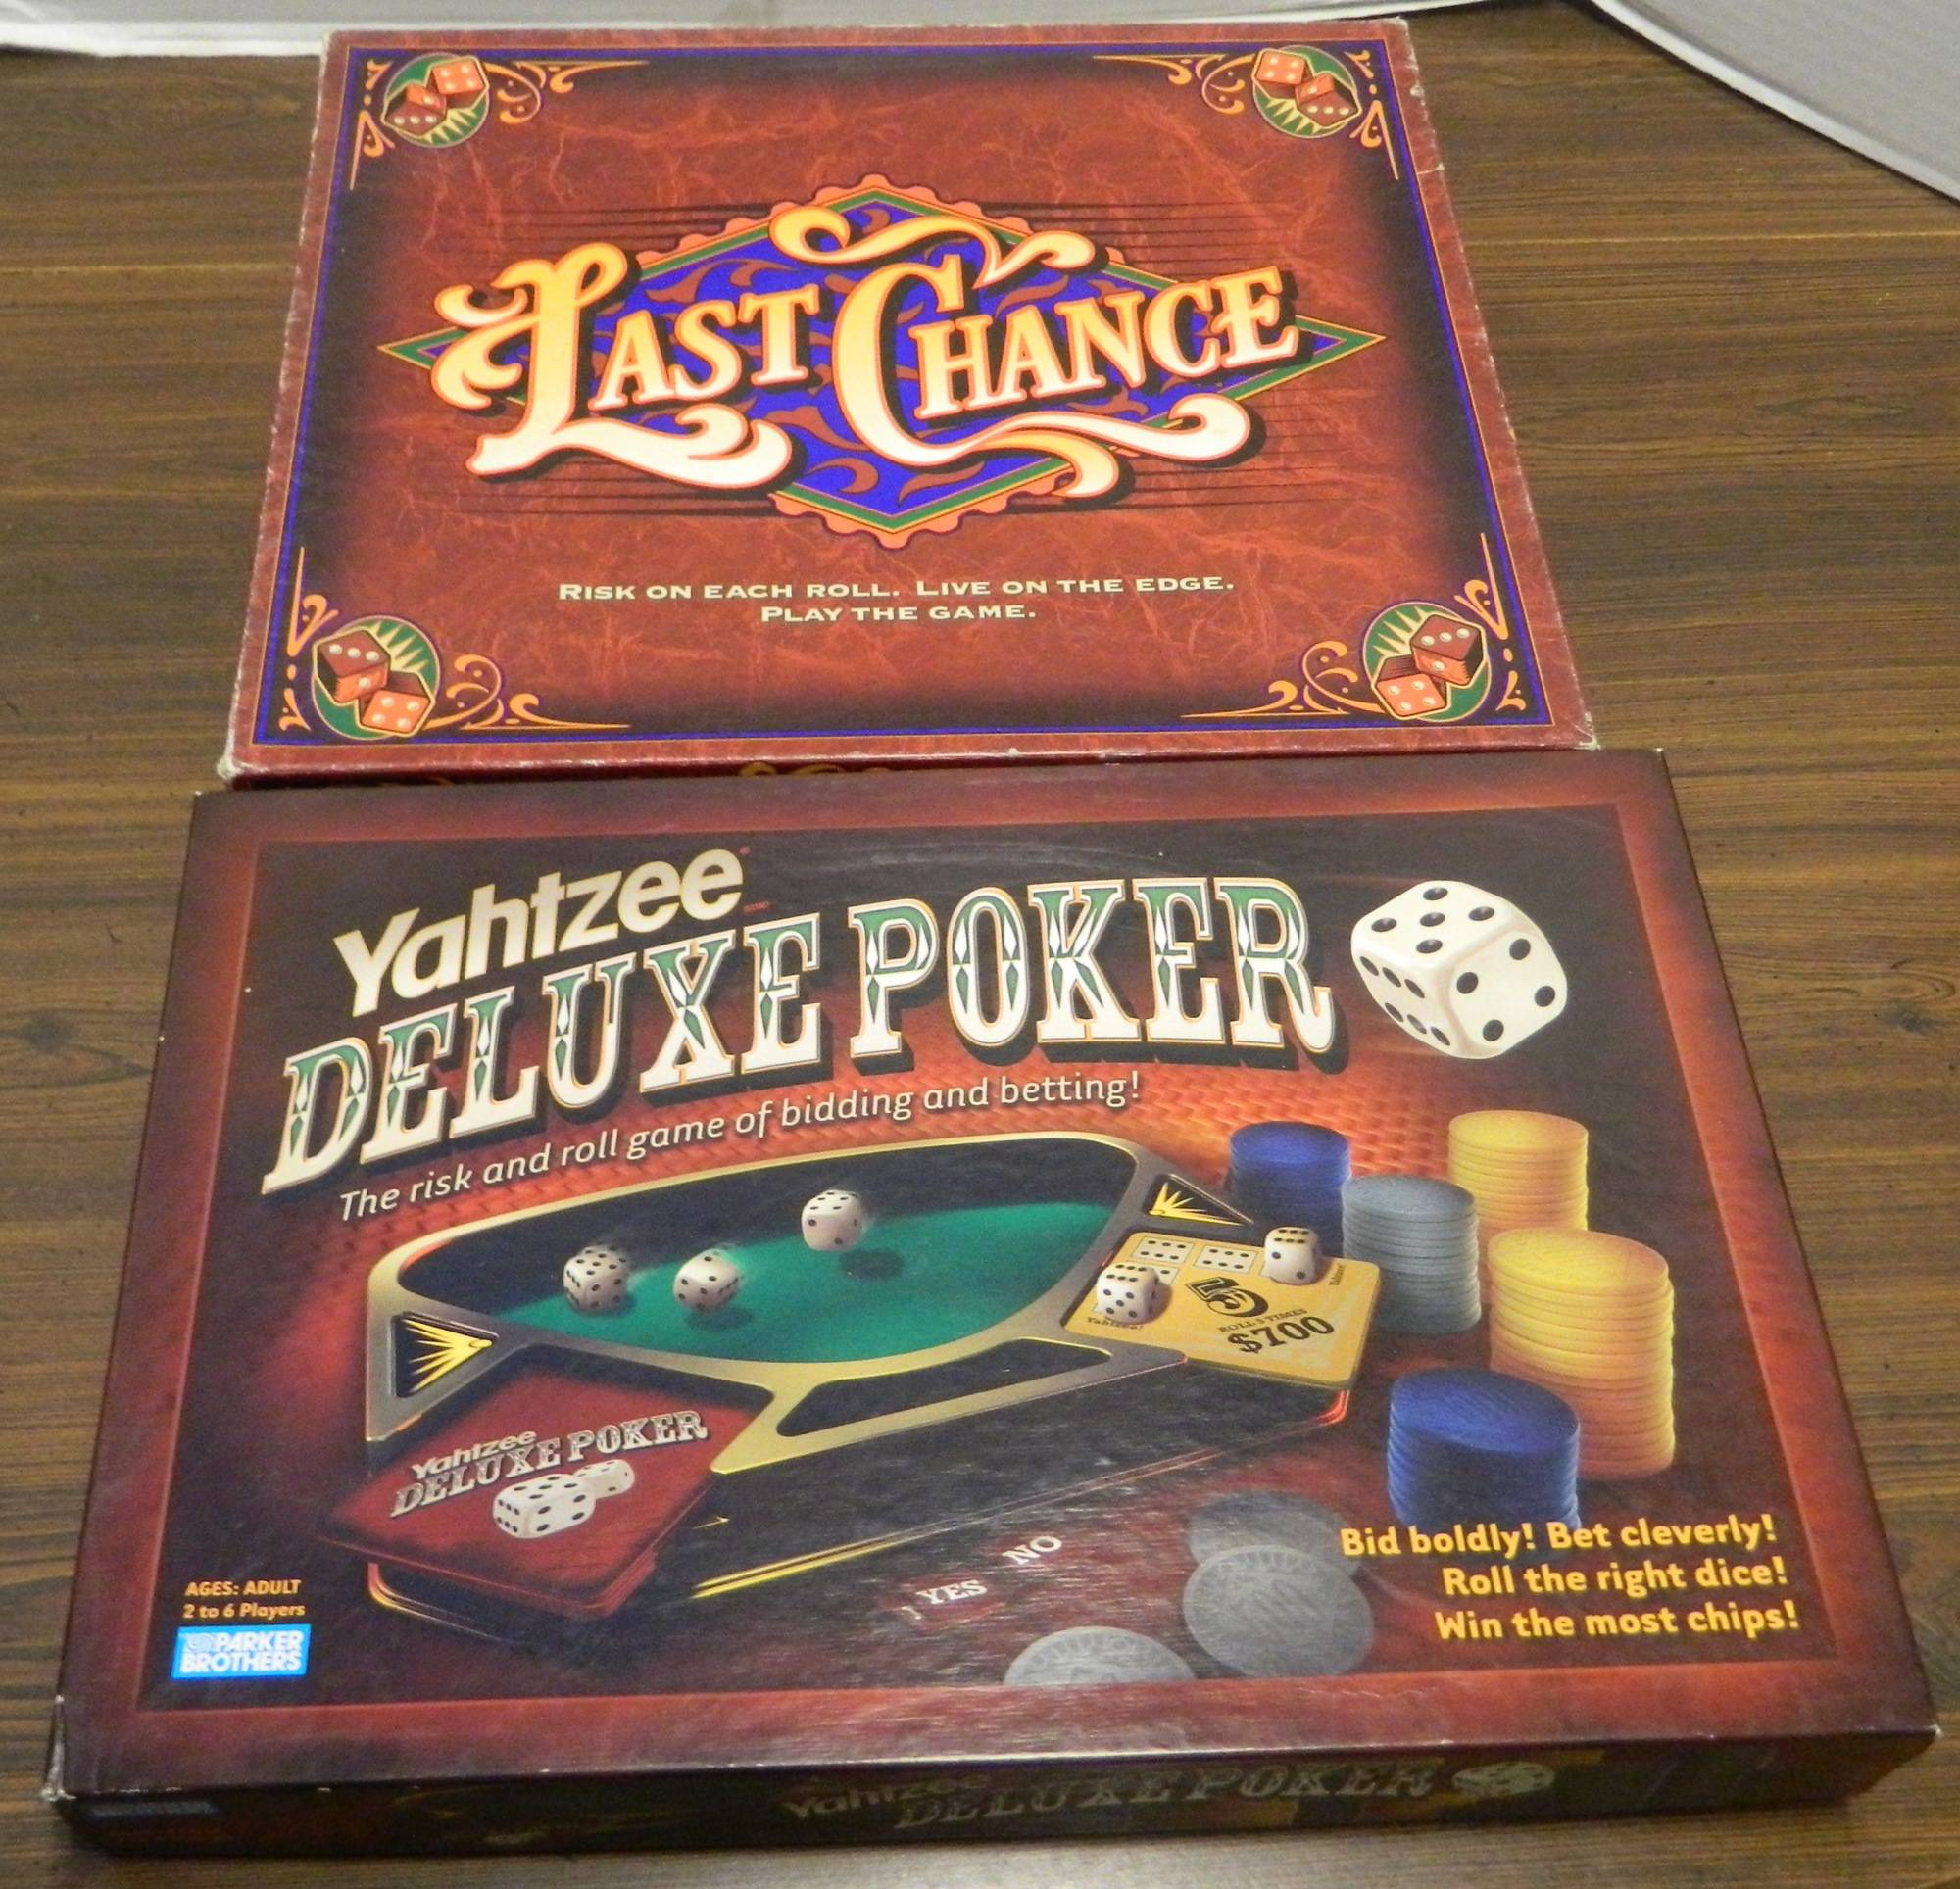 Box for Yahtzee Deluxe Poker